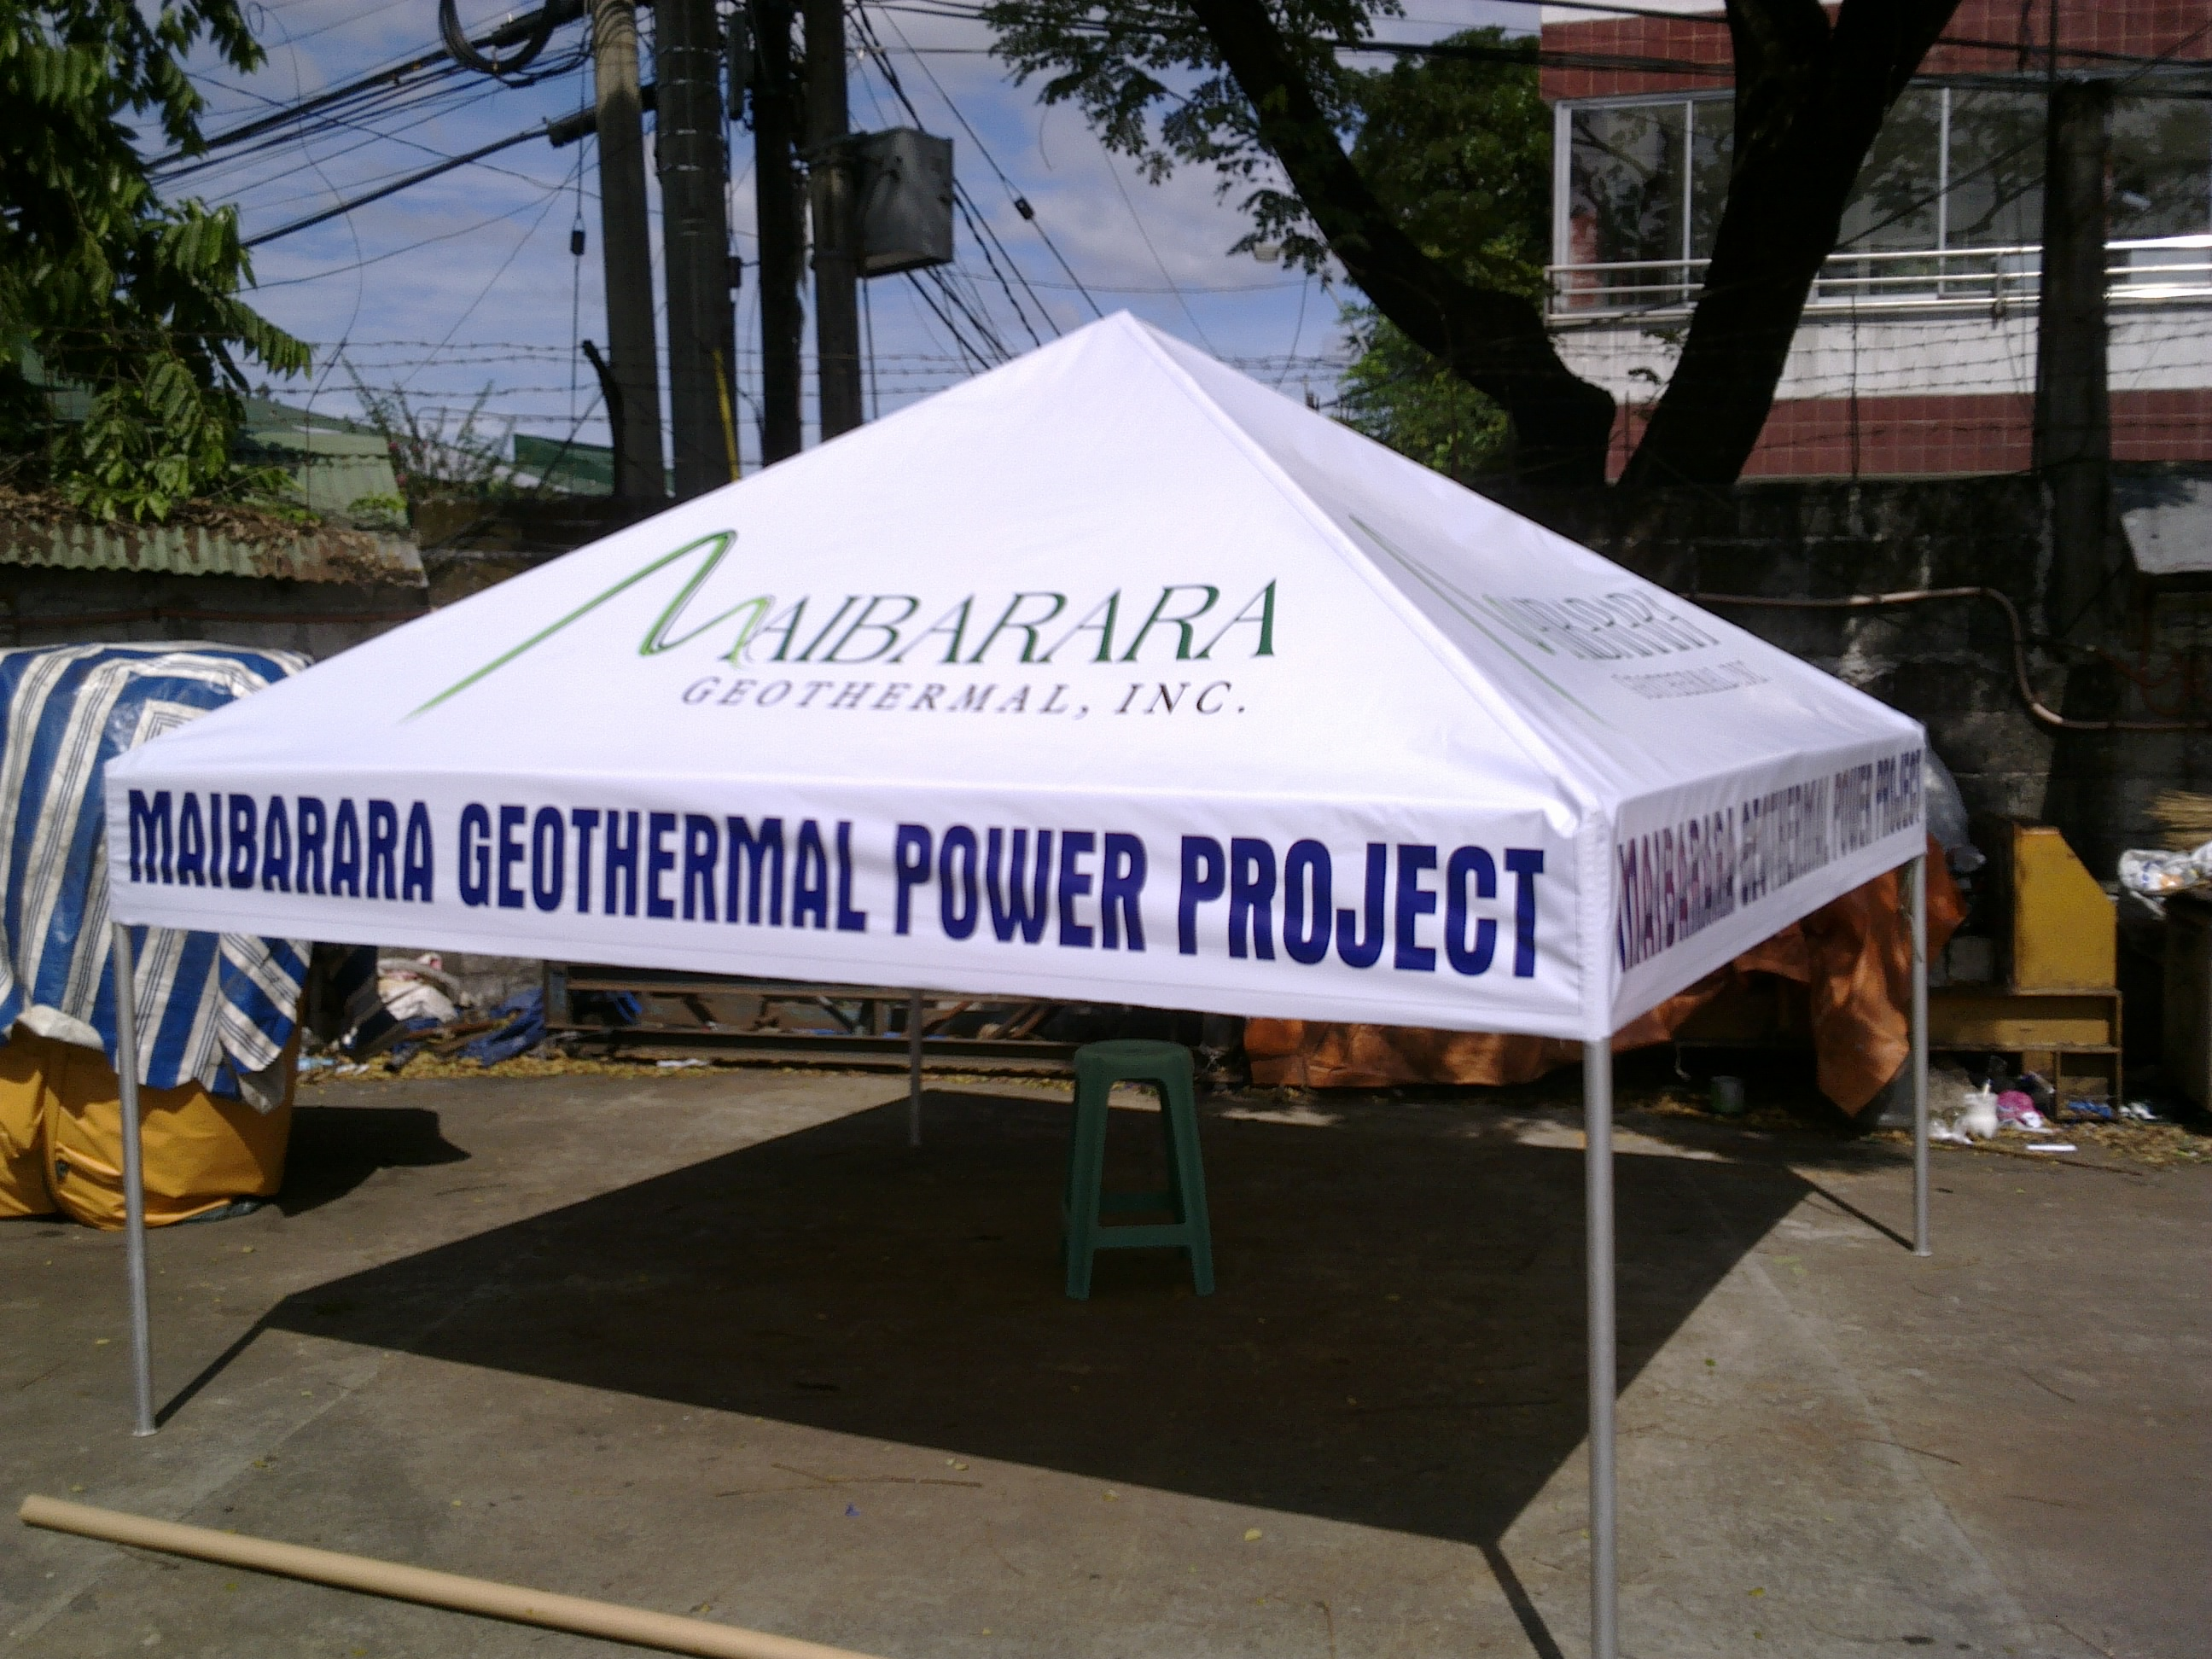 Garage Tent Cover Front & Tents u2013 Fabrimetrics Philippines Inc.